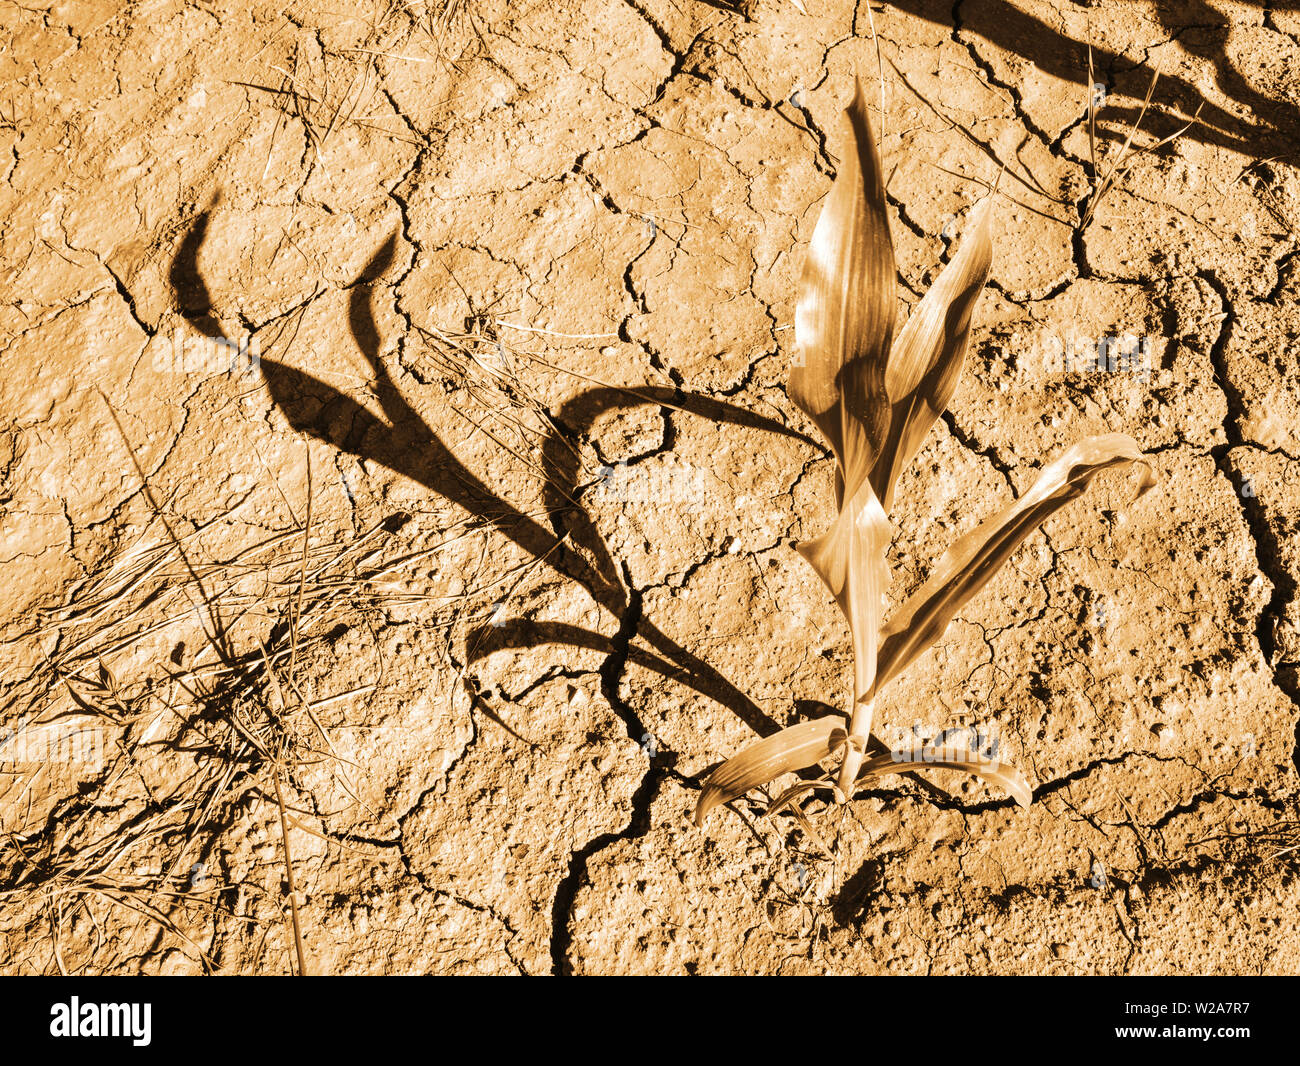 Detail of the Maize Stalk in dry red ferric soil without moisture and nutrients. - Stock Image